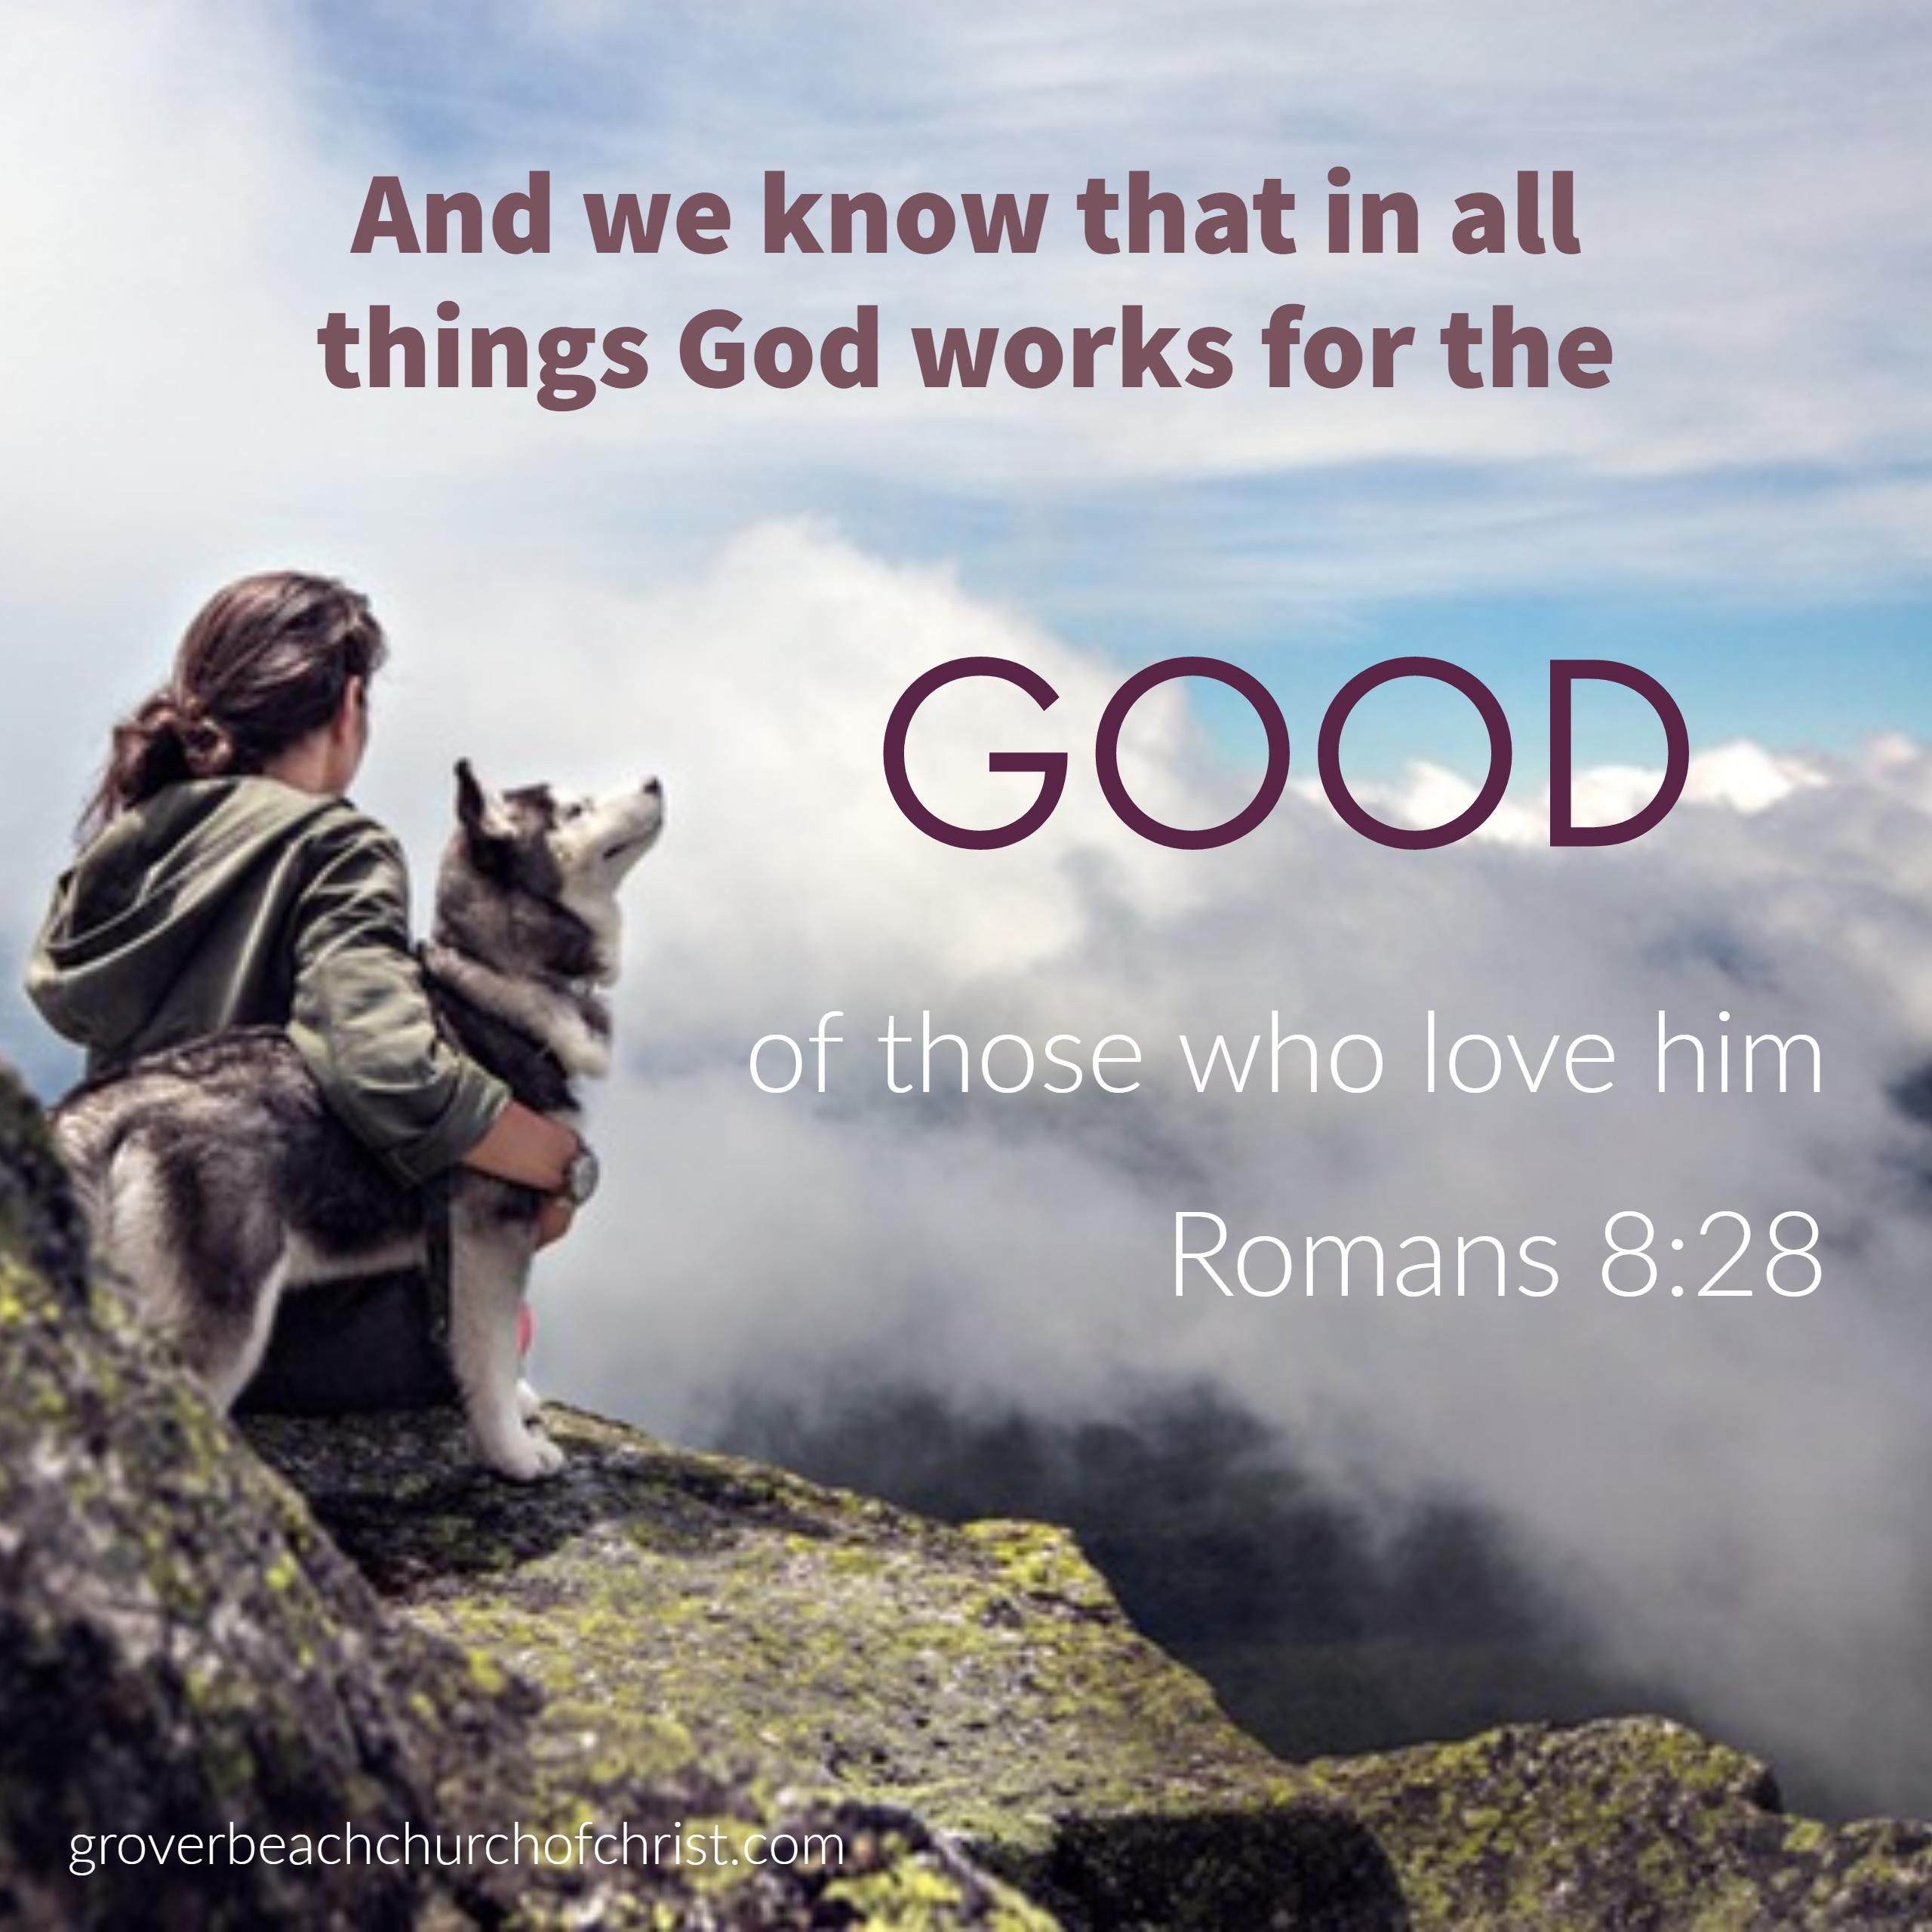 romans-8-28-and-we-know-that-in-all-things